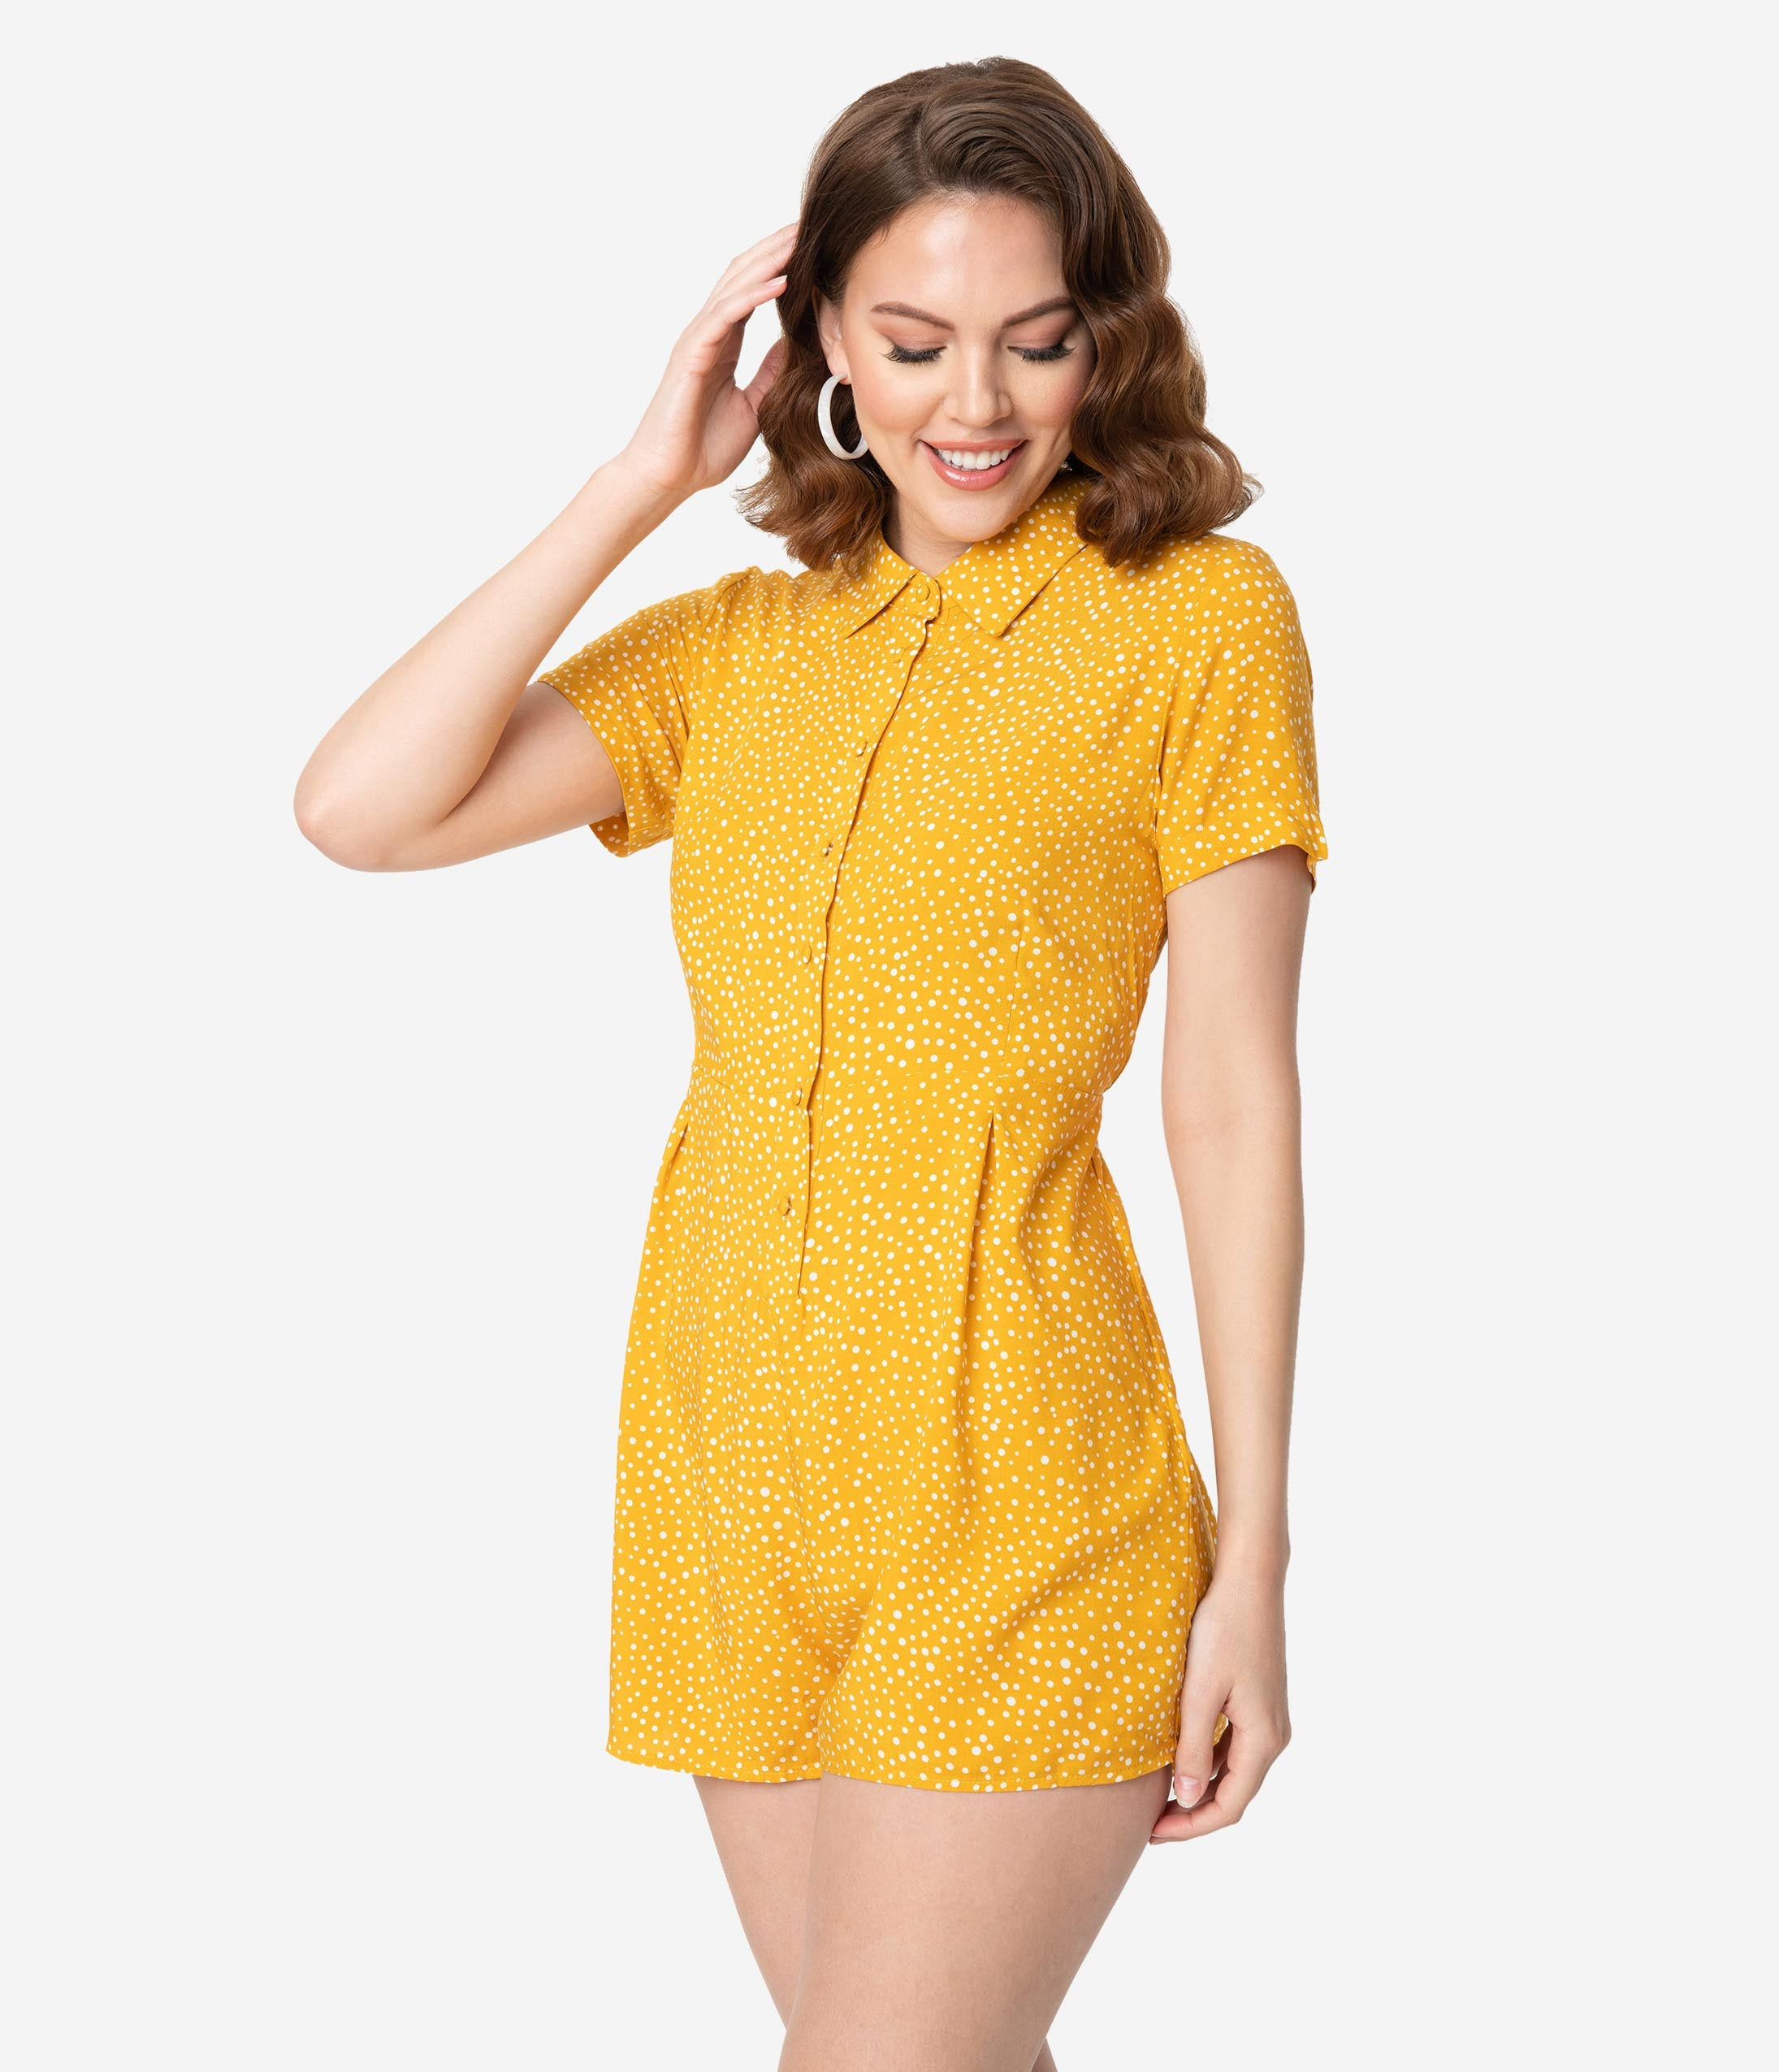 Vintage Rompers, Playsuits | Retro, Pin Up, Rockabilly Playsuits 1950S Style Mustard Yellow  White Polka Dot Print Short Sleeve Romper $42.00 AT vintagedancer.com